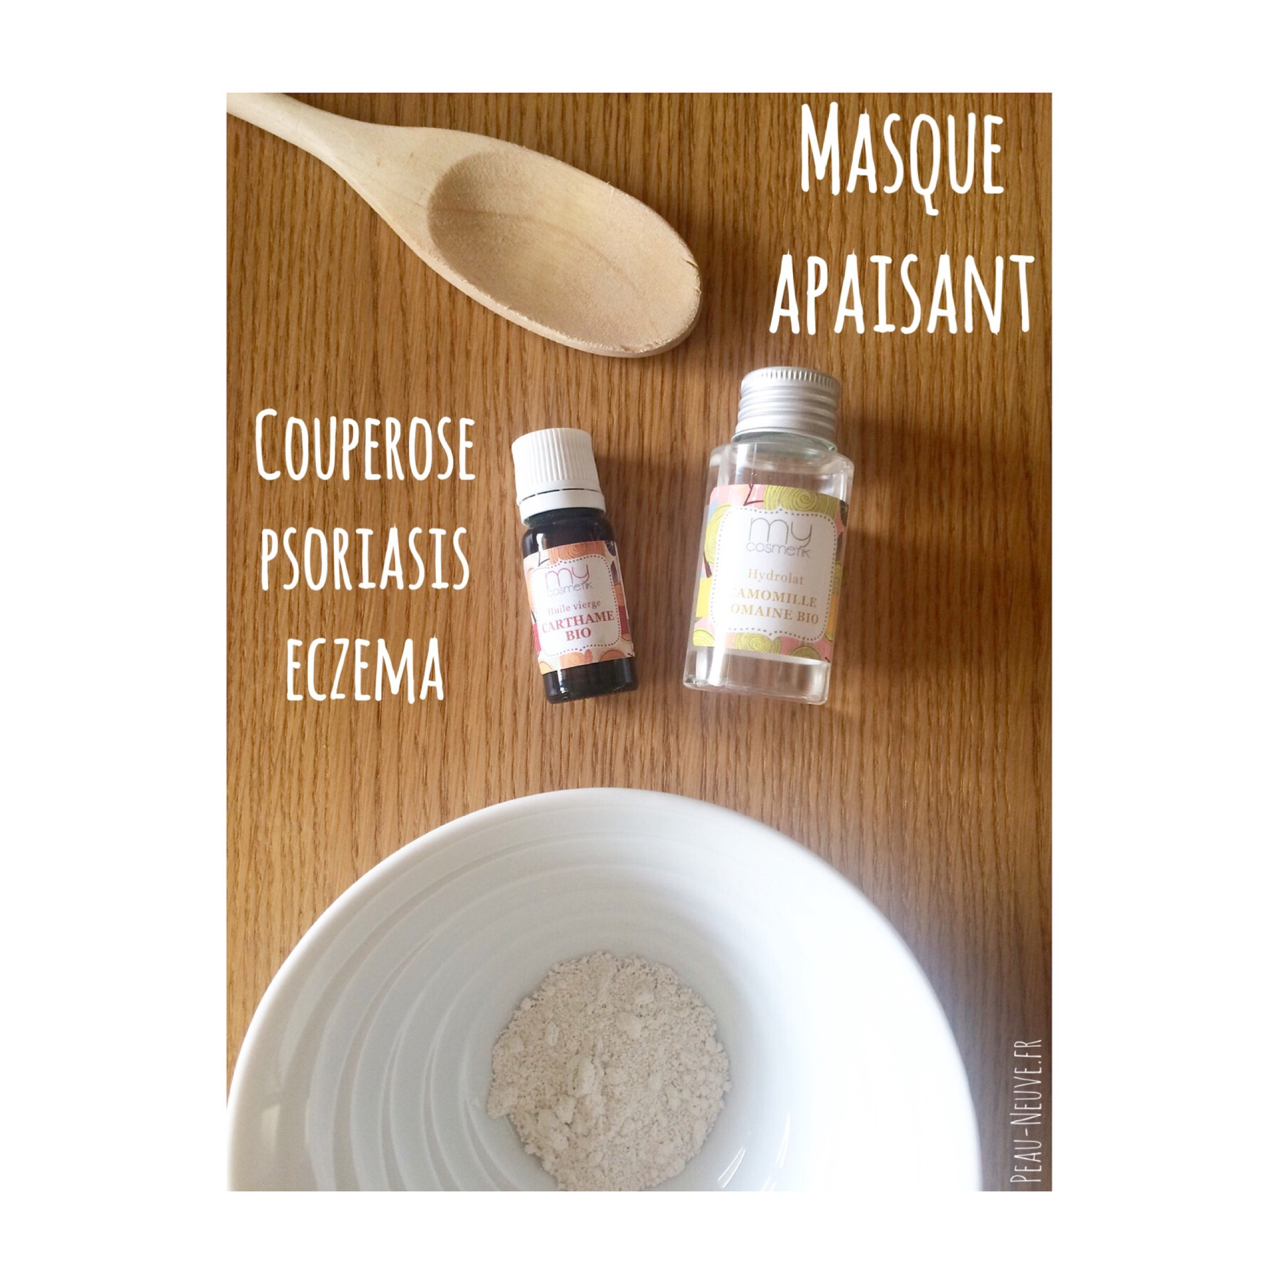 Masque apaisant #Couperose